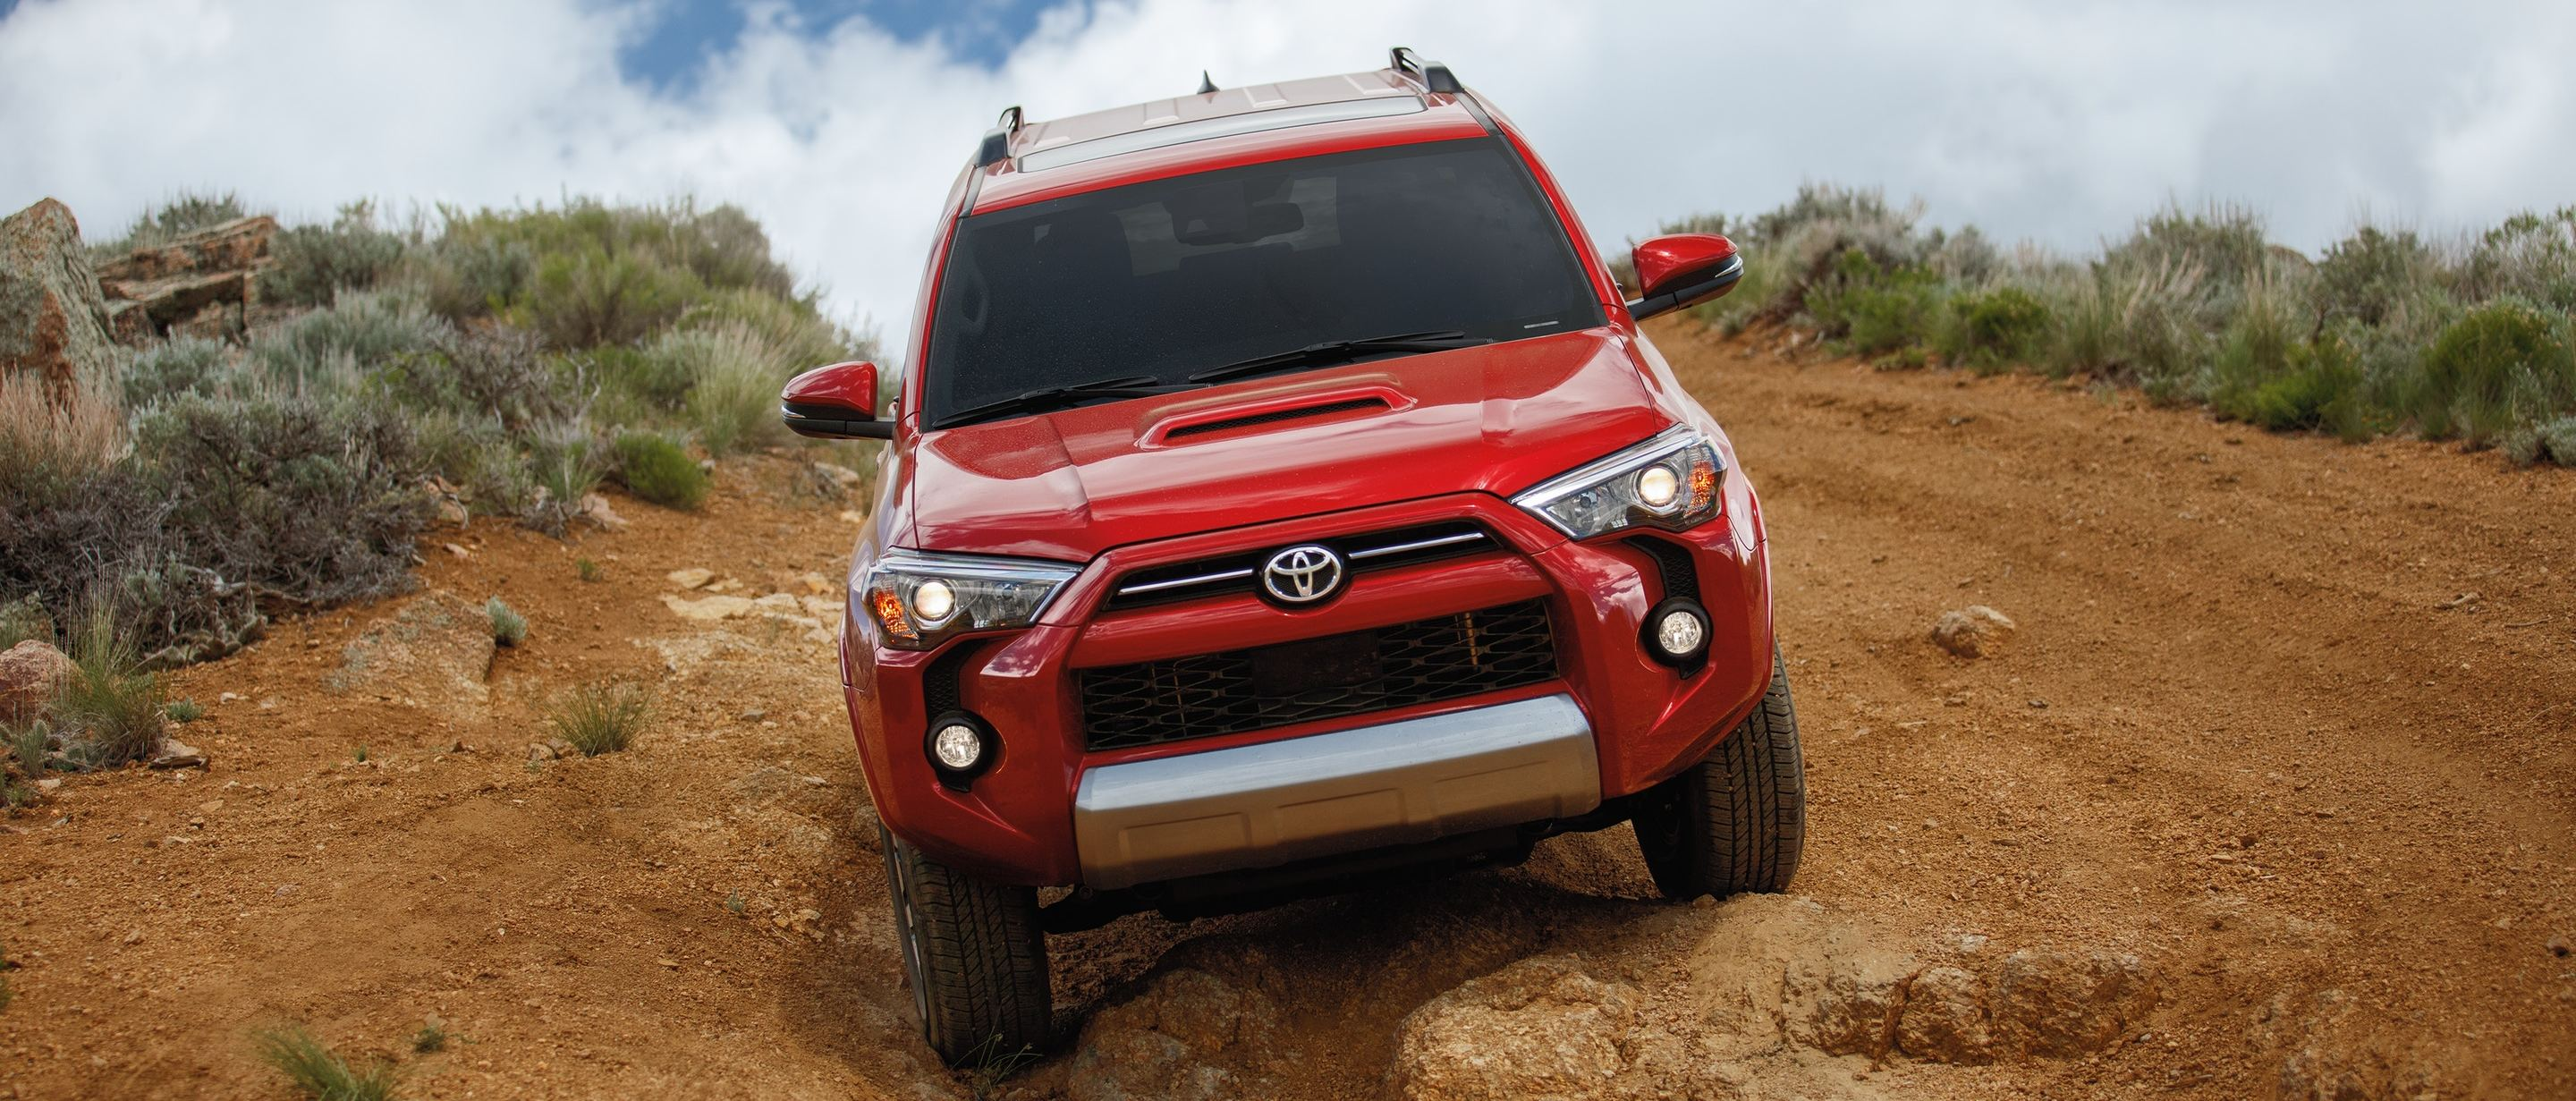 2020 Toyota 4Runner for Sale near Paramus, NJ